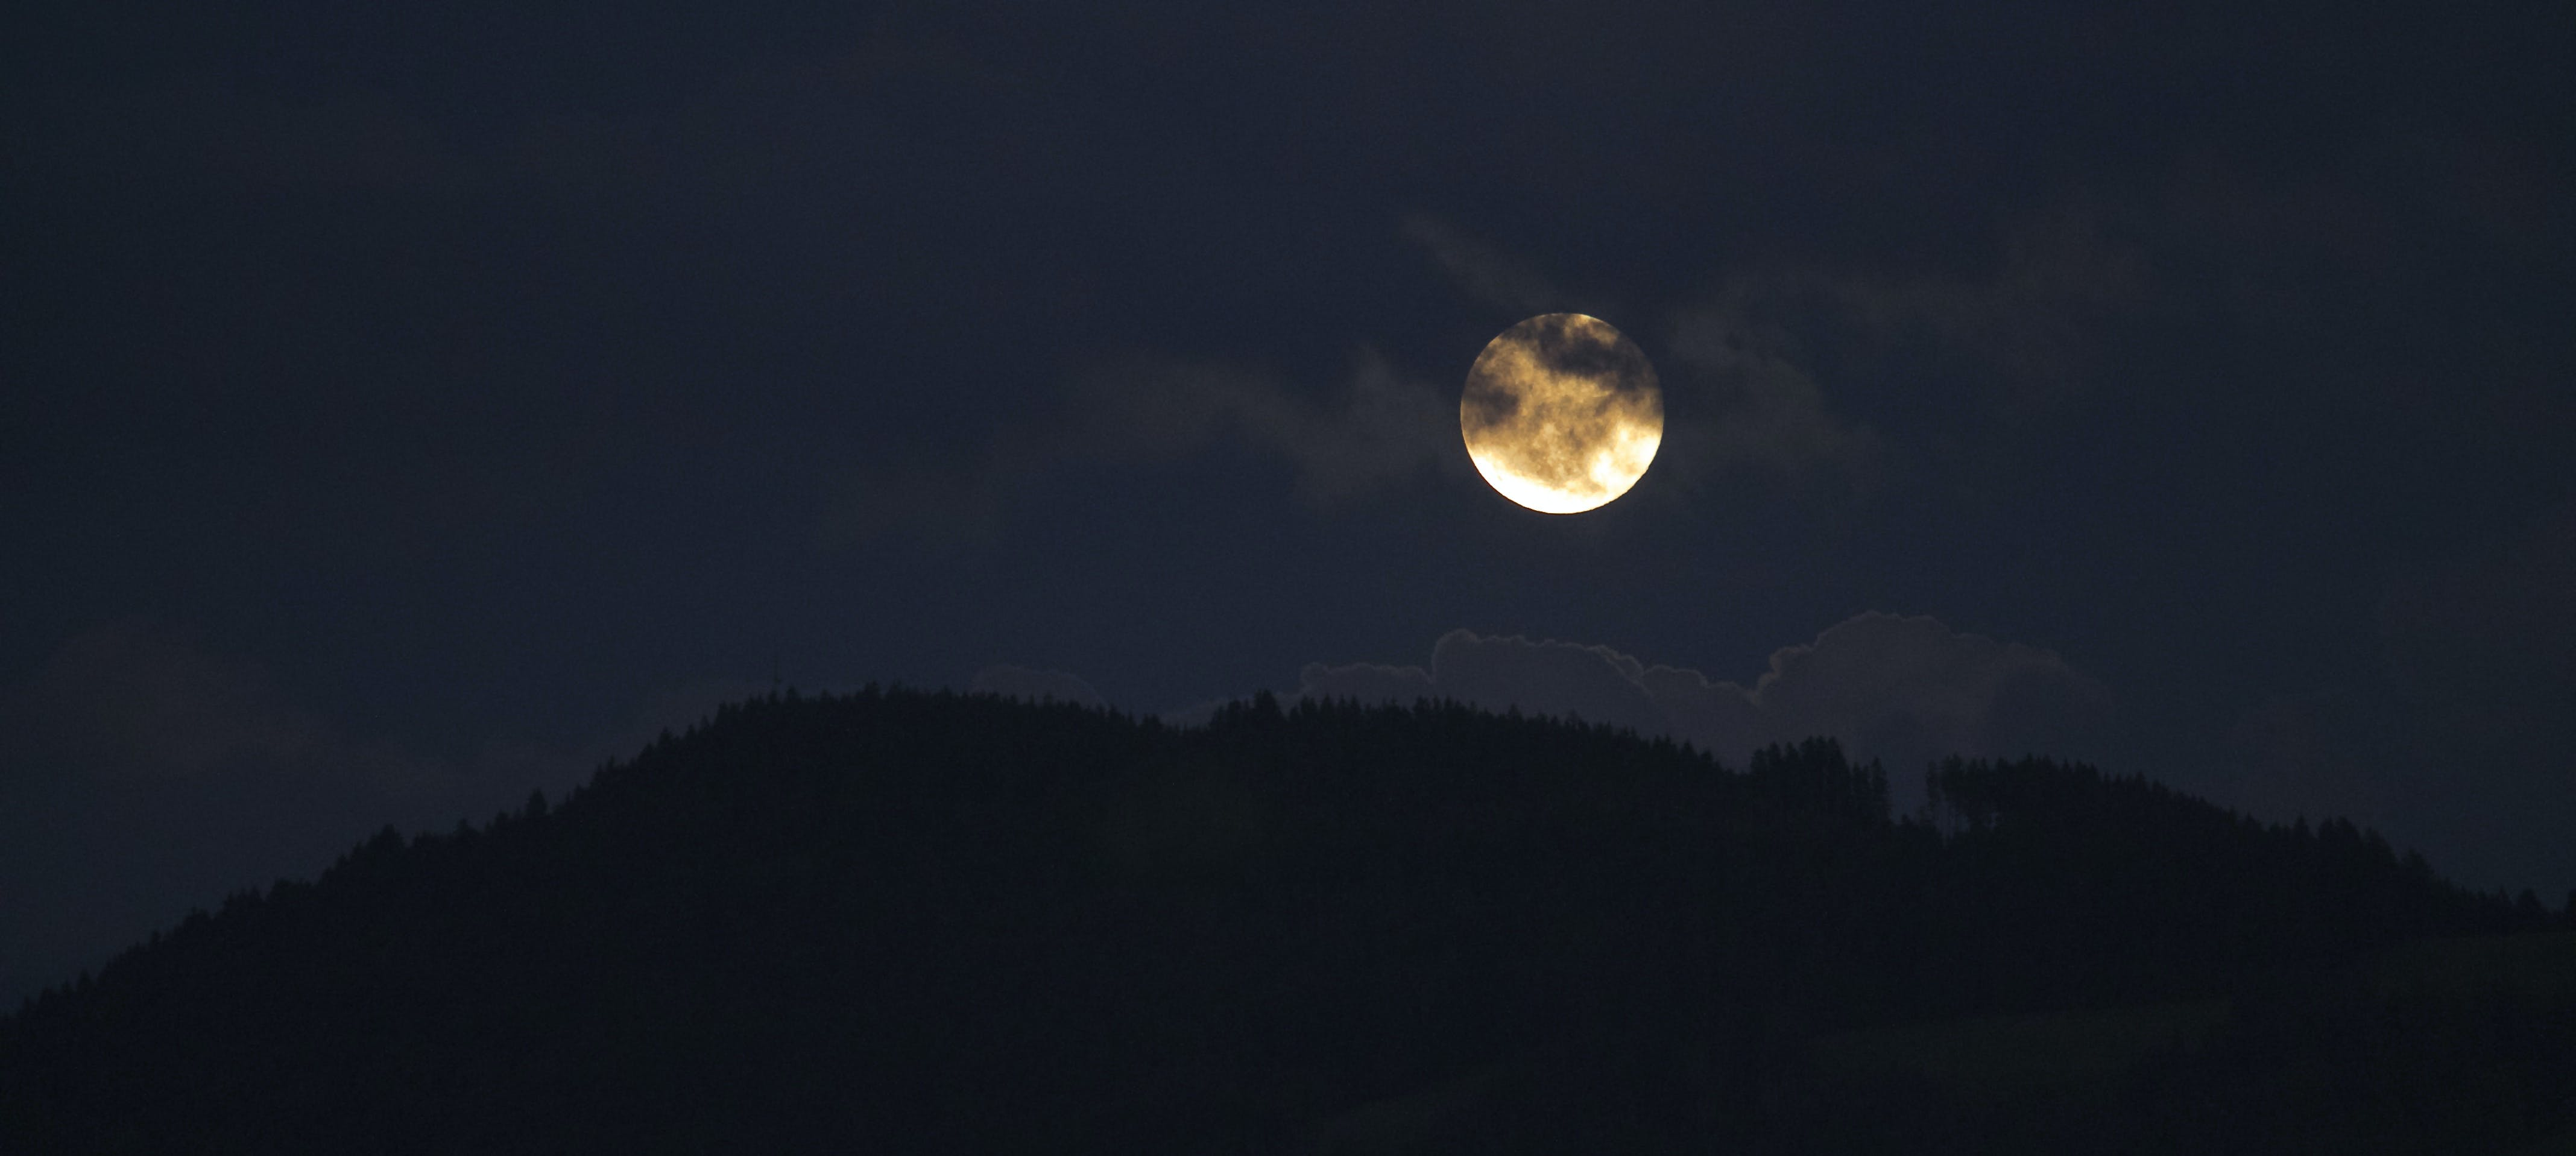 Silhouette of Moon and Mountain